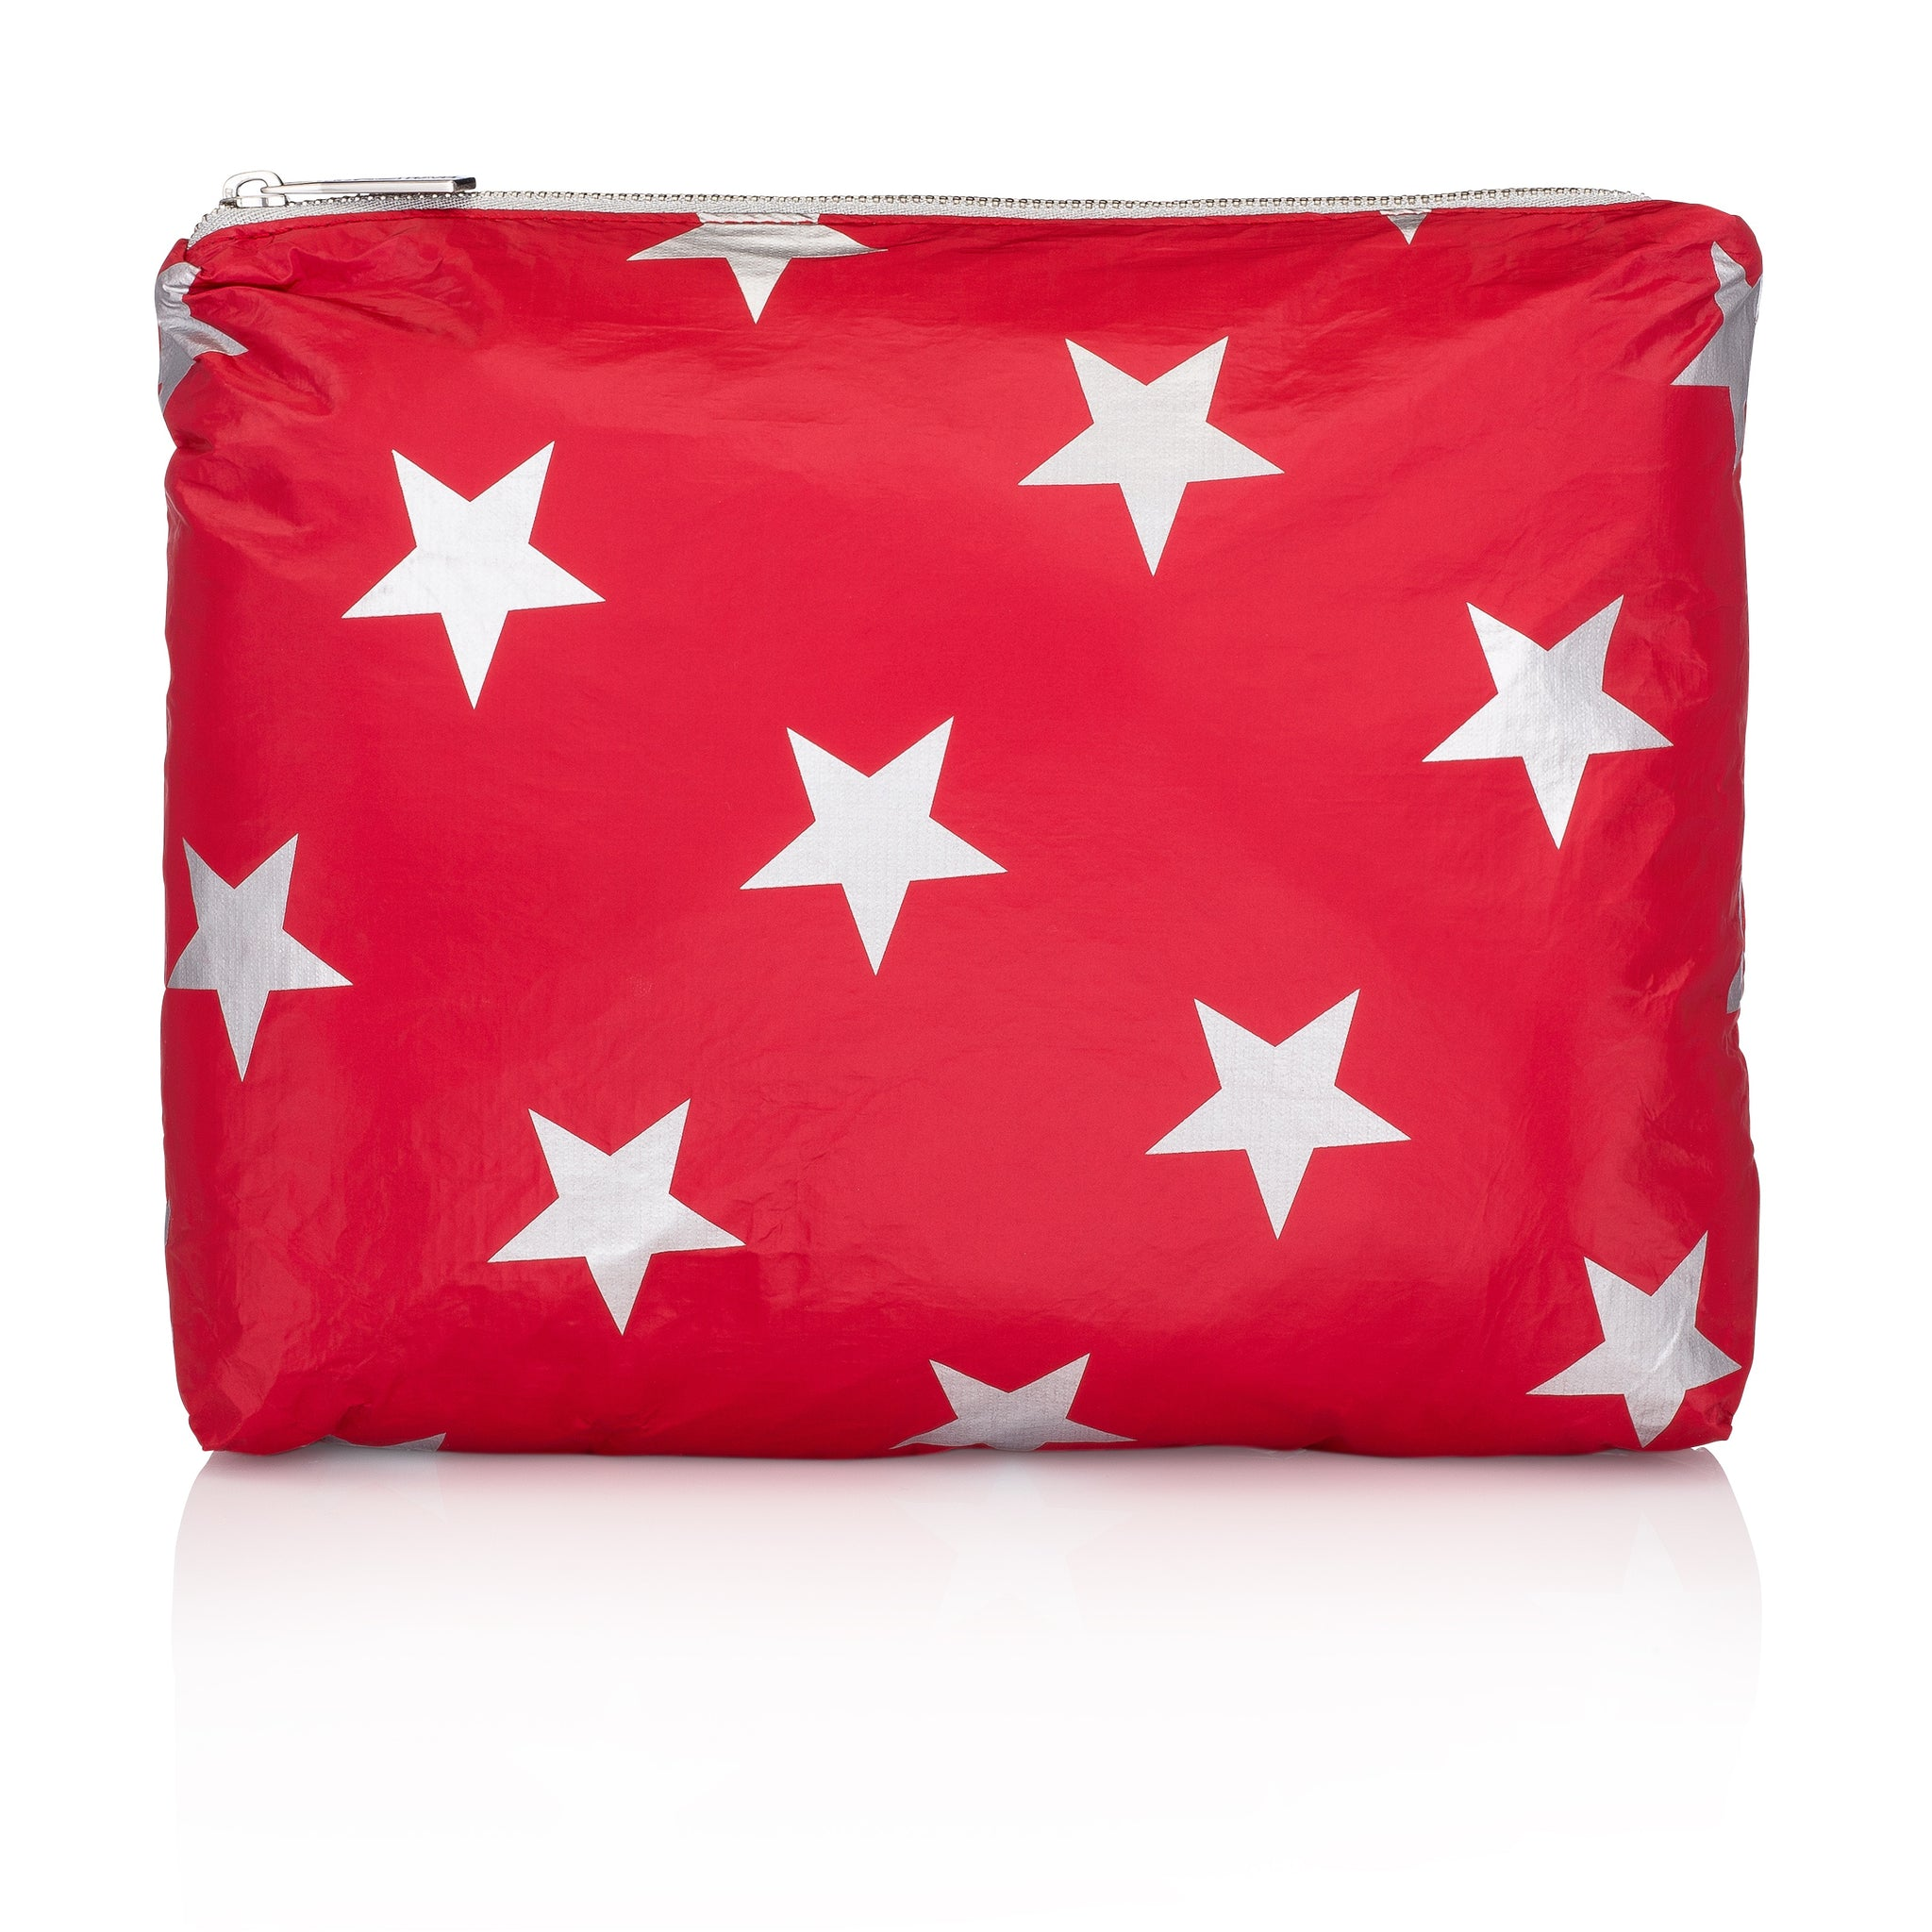 Travel Pack - Makeup Pouch - Medium Pack - Chili Pepper Red with Silver Stars